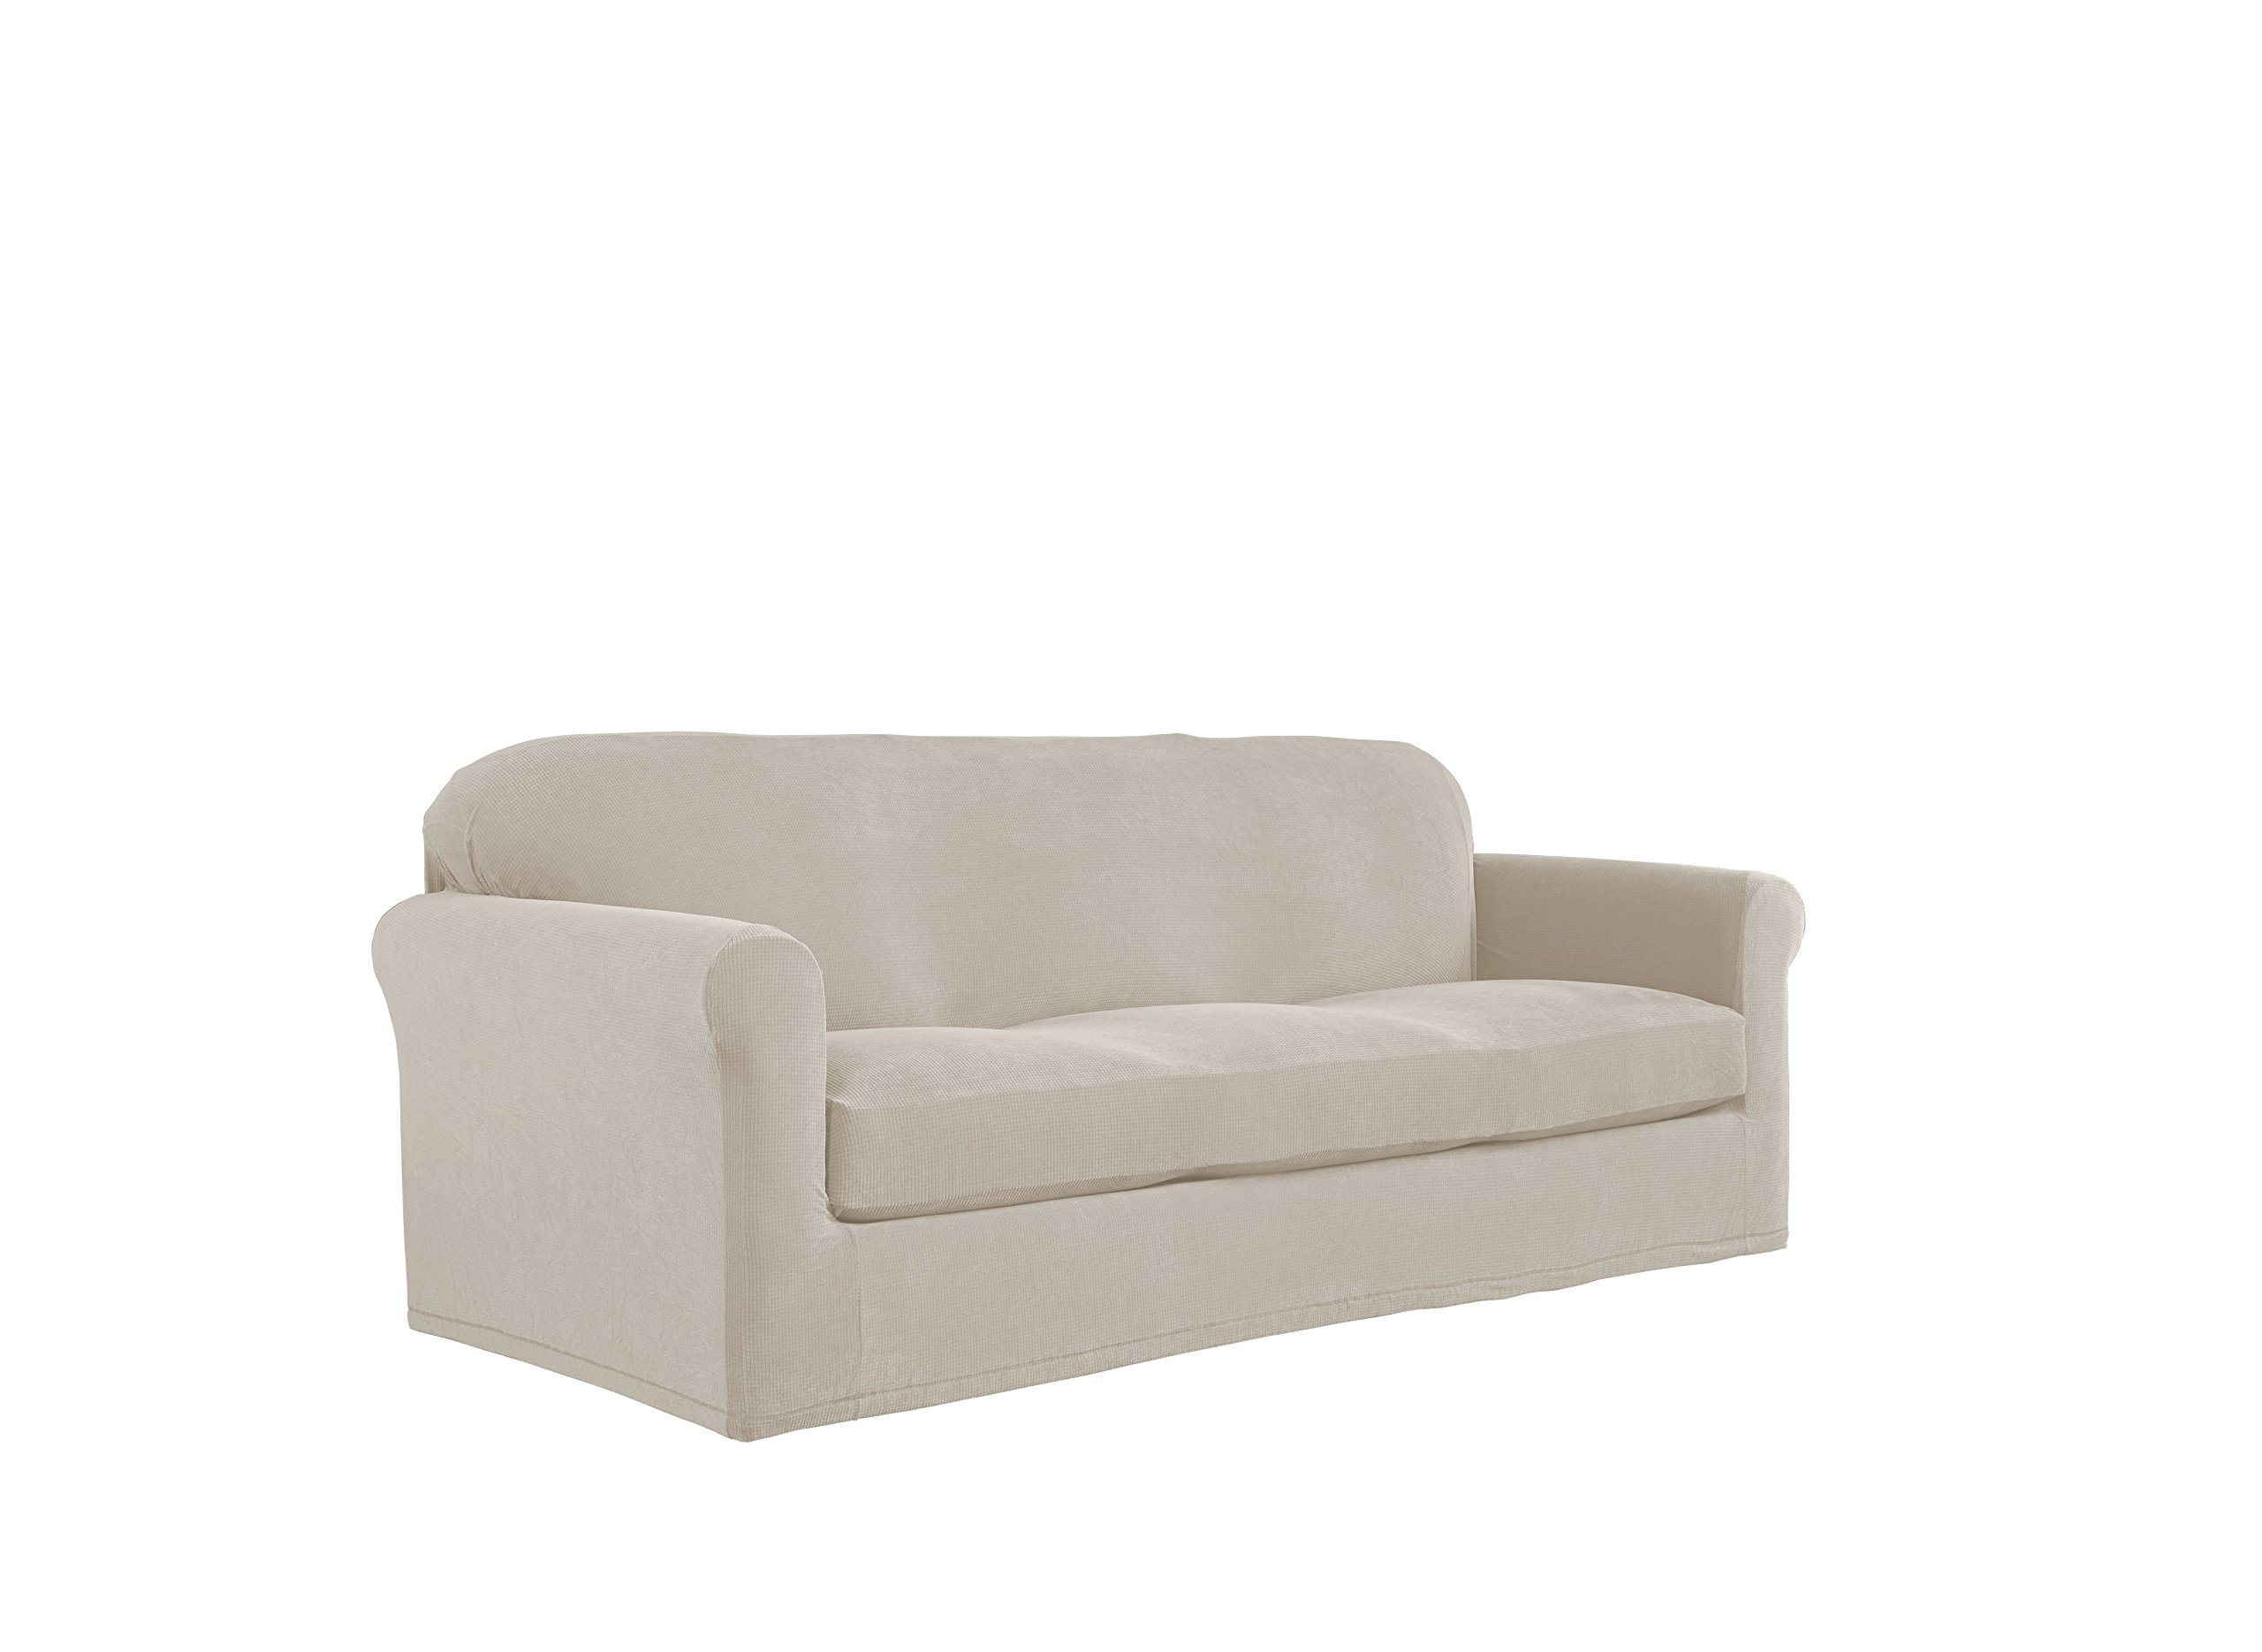 Serta 2 Piece Stretch Grid Box Sofa Slipcover, Putty